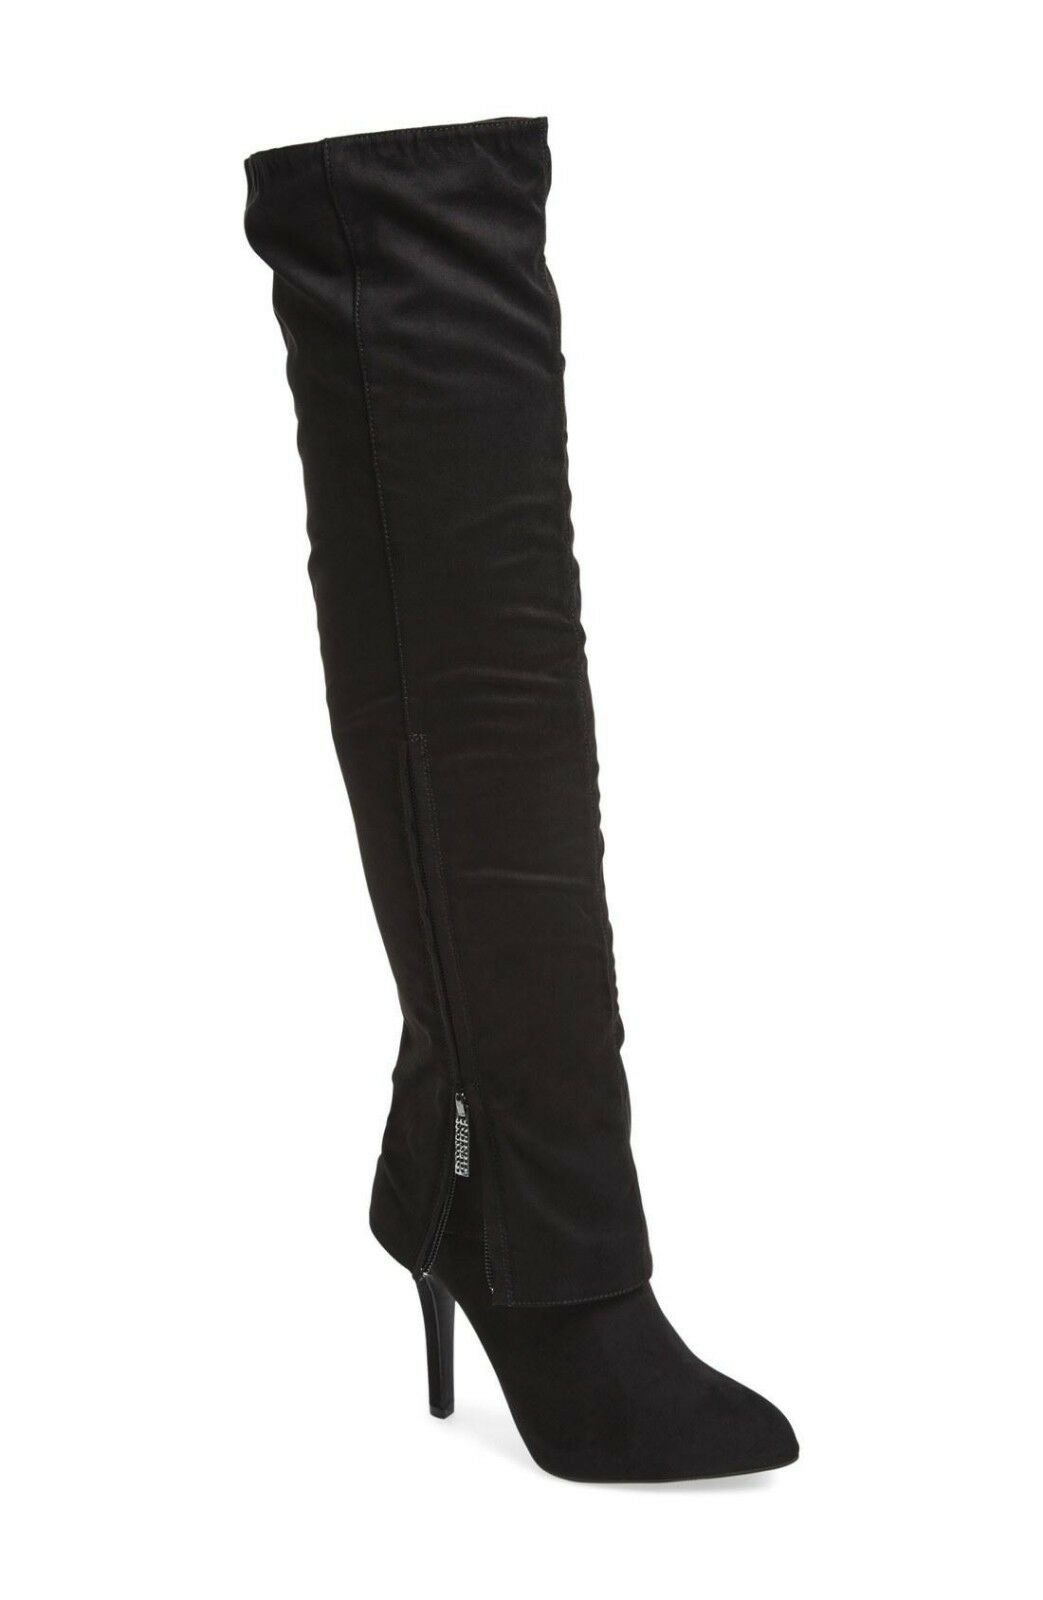 negozio online outlet NEW IN BOX BOX BOX NINA KANDI Over the Knee avvio Colore  True nero Glam Dimensione 7 1 2 SEXY   caldo